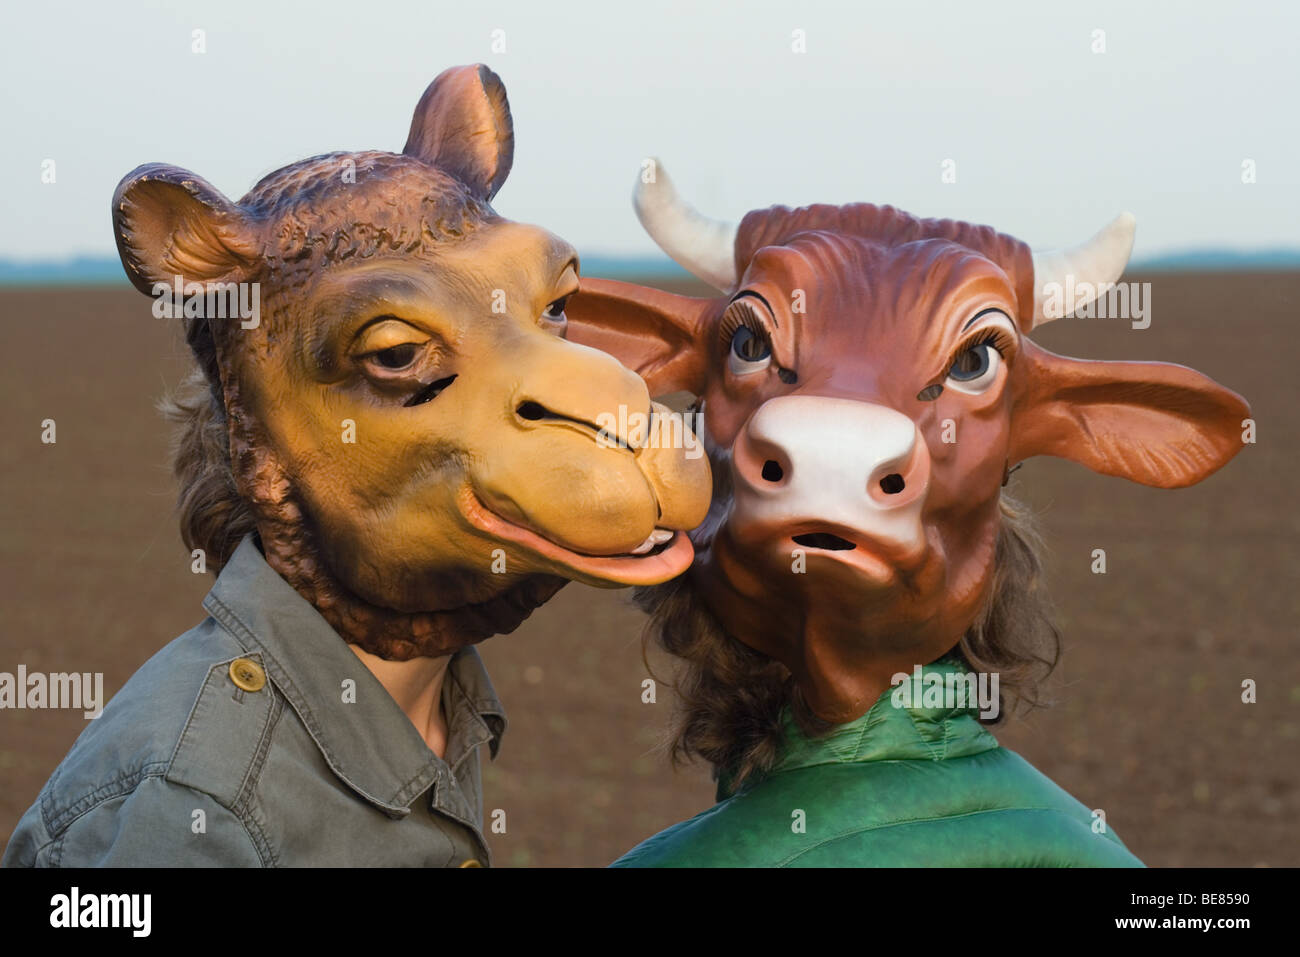 Two people wearing animal masks, close-up Stock Photo